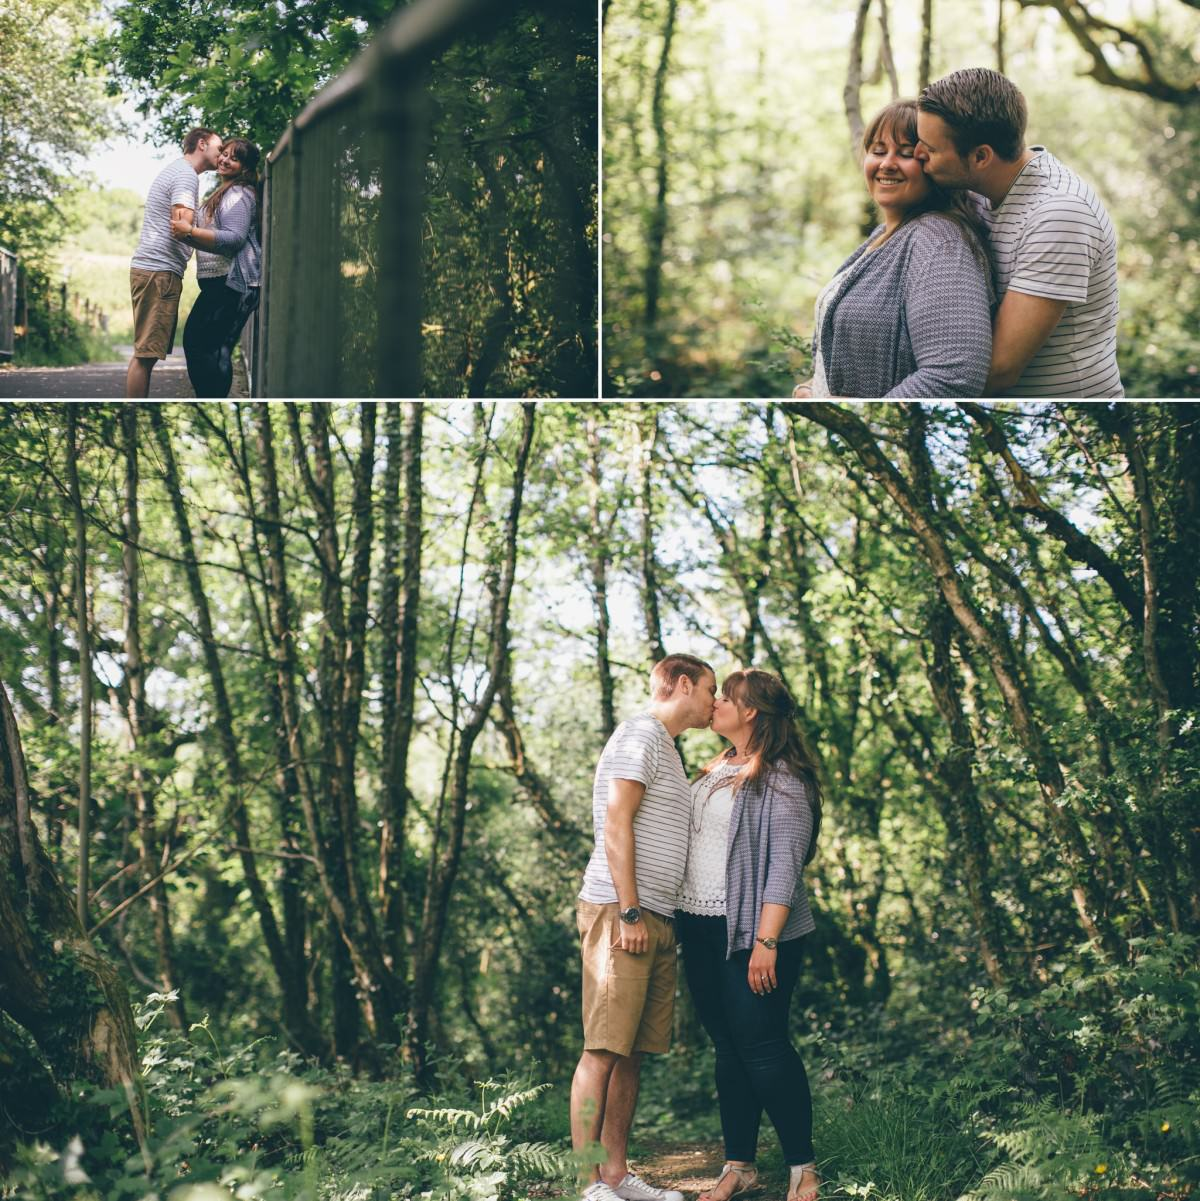 laura_sam_engagement_shoot_tonteg_miskin_manor_wedding_rachel_lambert_photography_ 16